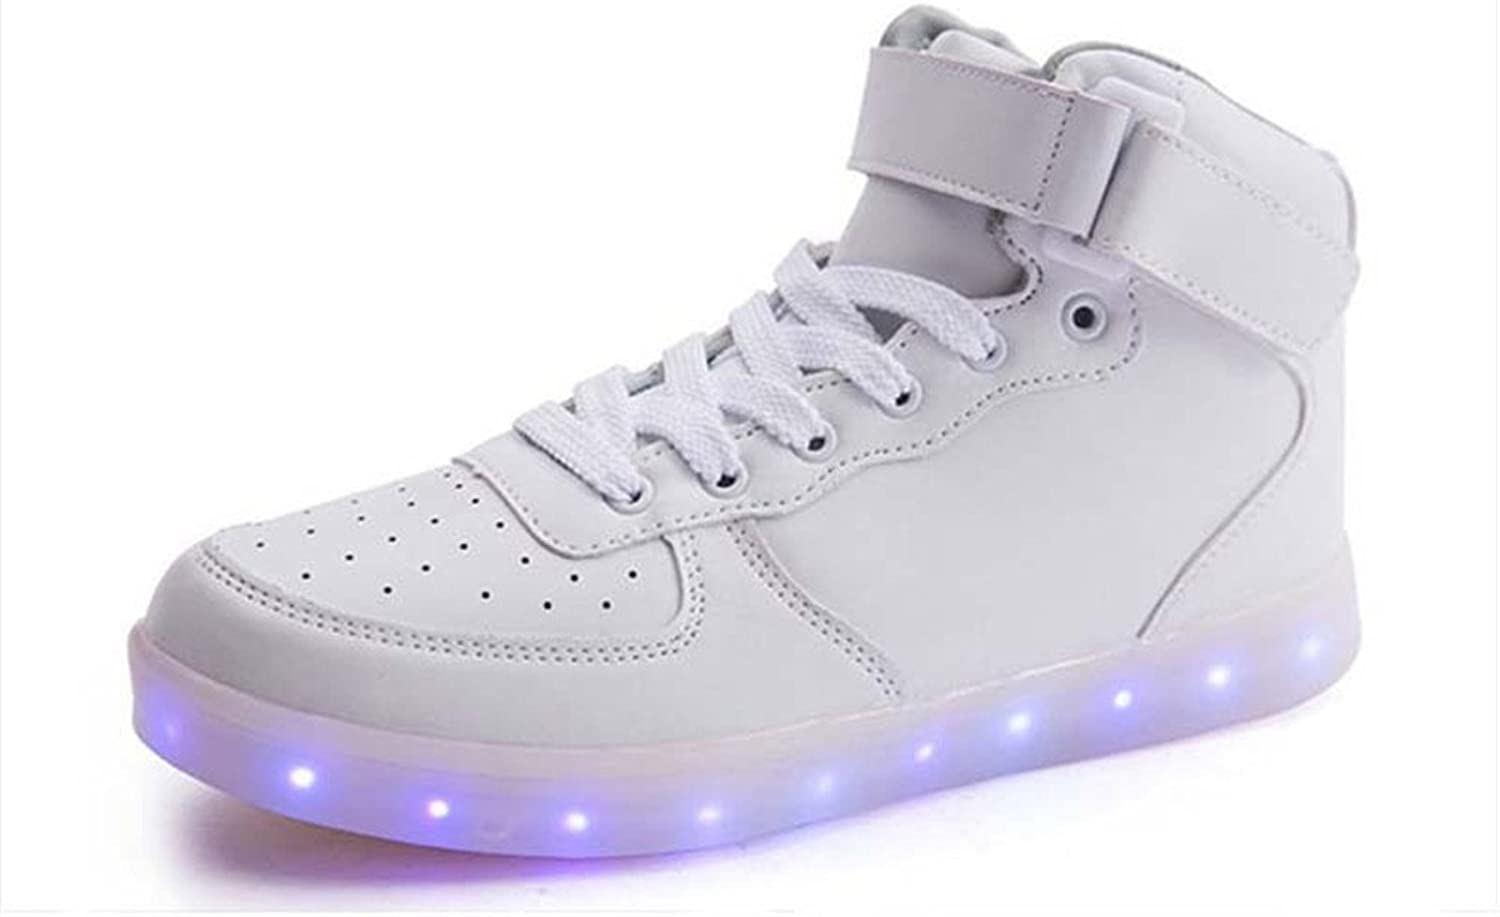 PLAN B High Top LED shoes Light up USB Charging Flashing Sneakers for Women Men-(White-11 B(M) US Women 8.5 D(M) USmen)